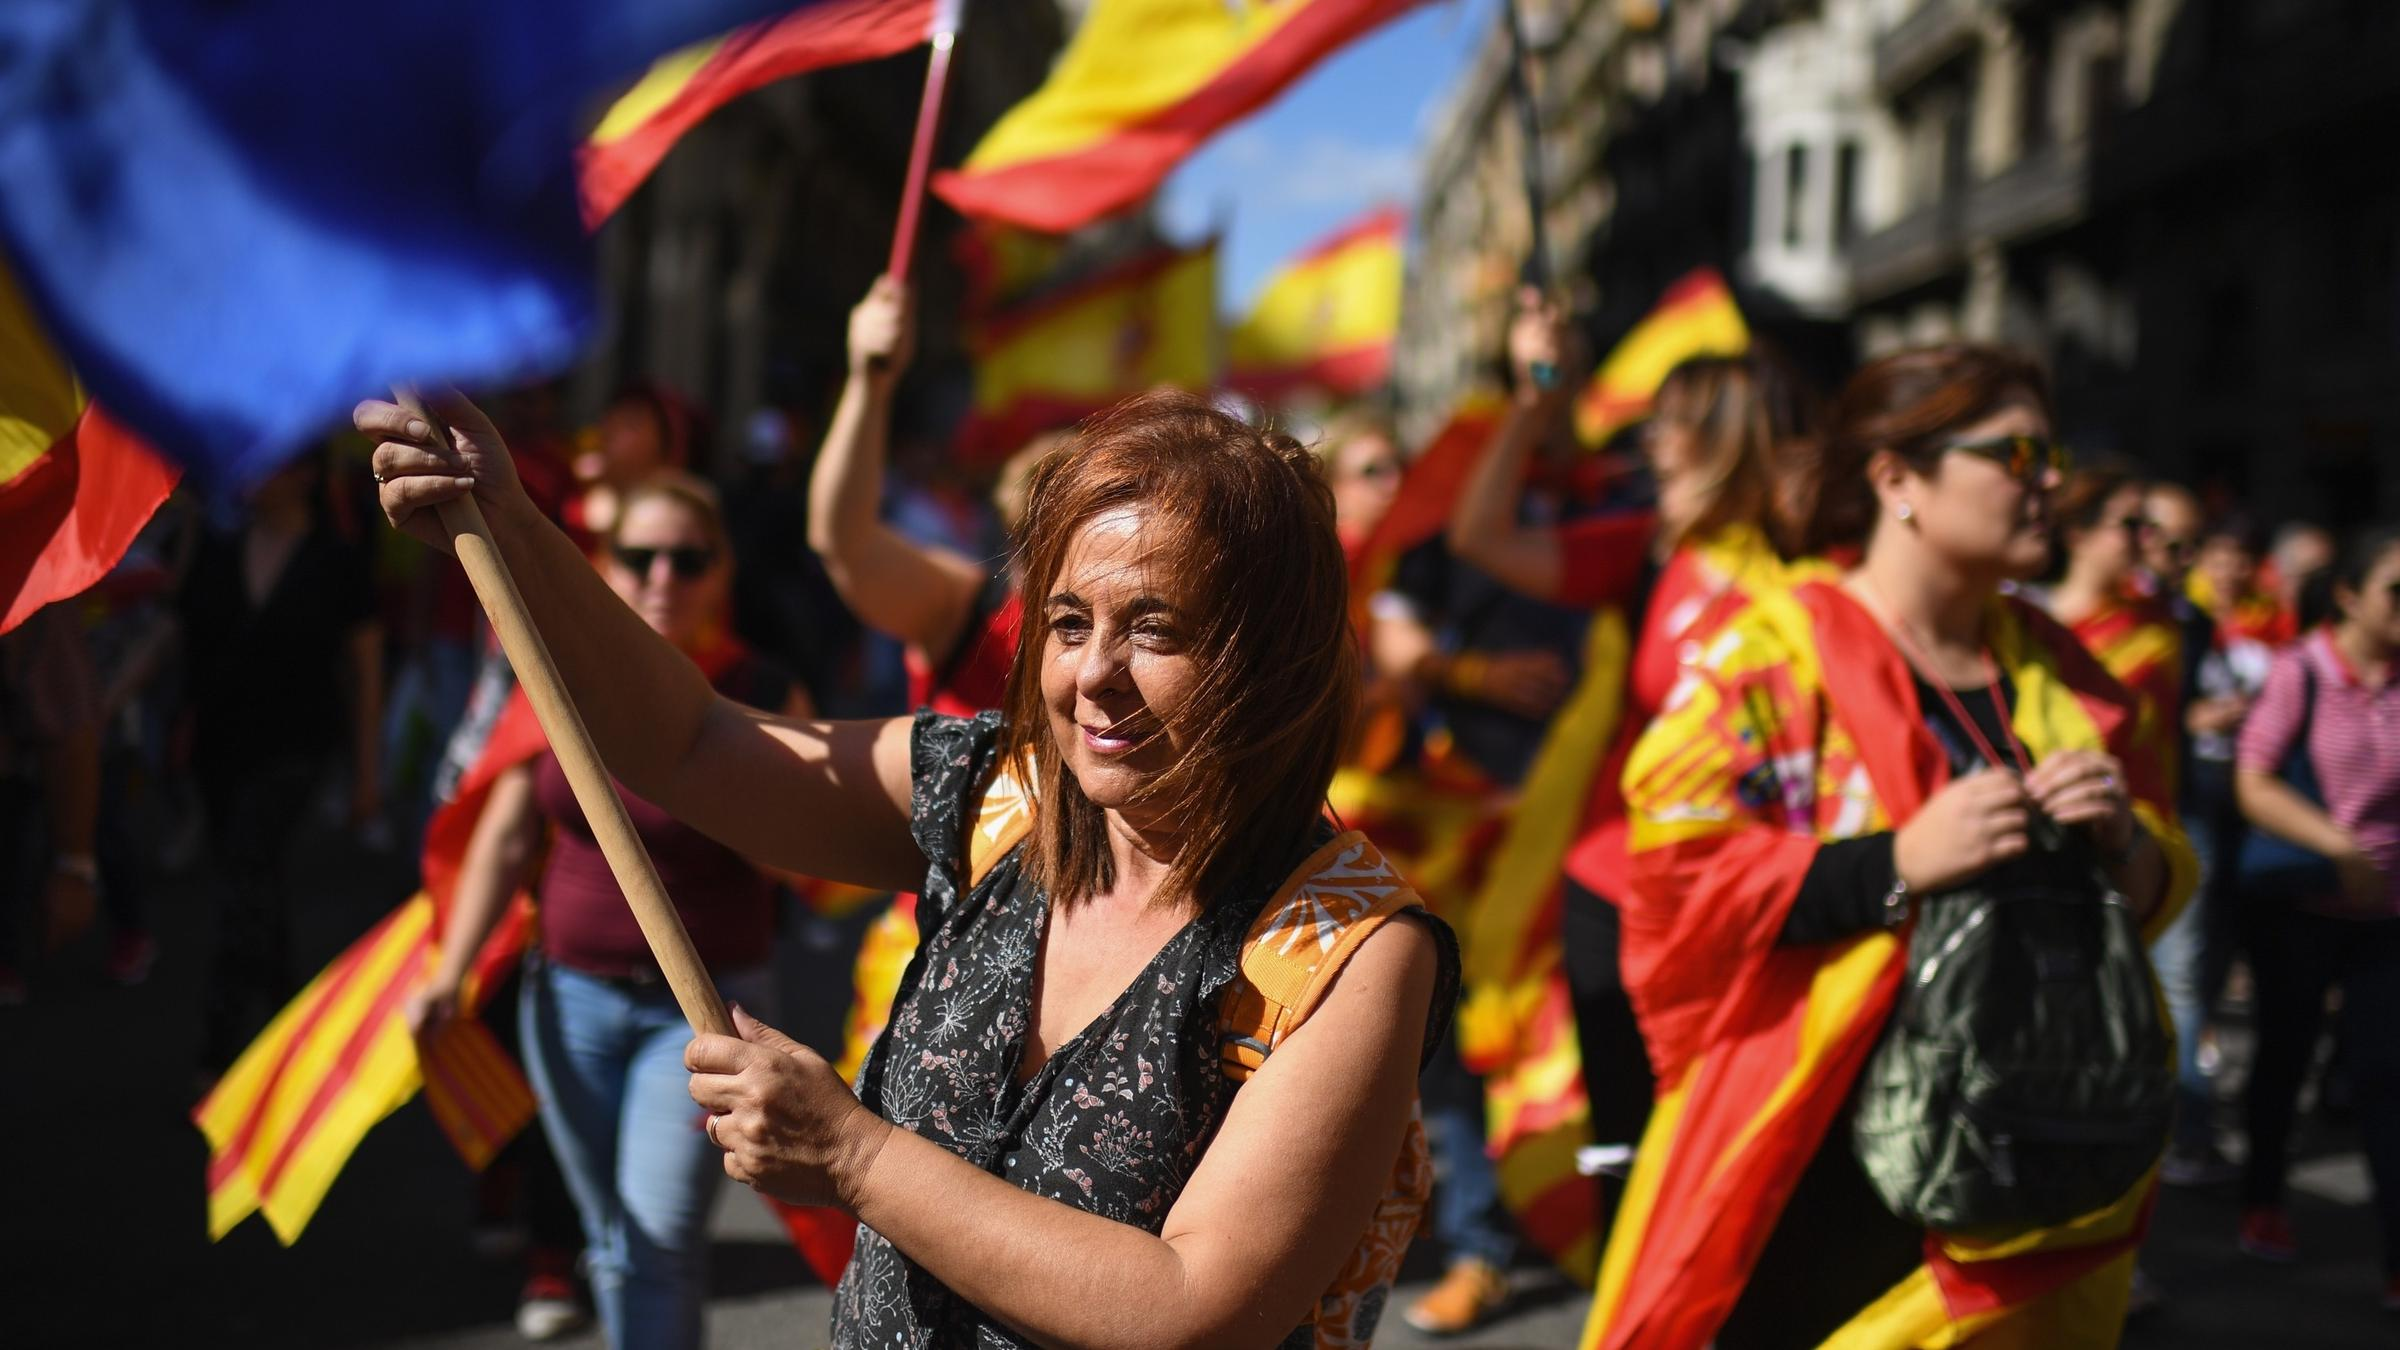 A Pro Unity rally marches through Barcelona on Sunday a week after a referendum on independence